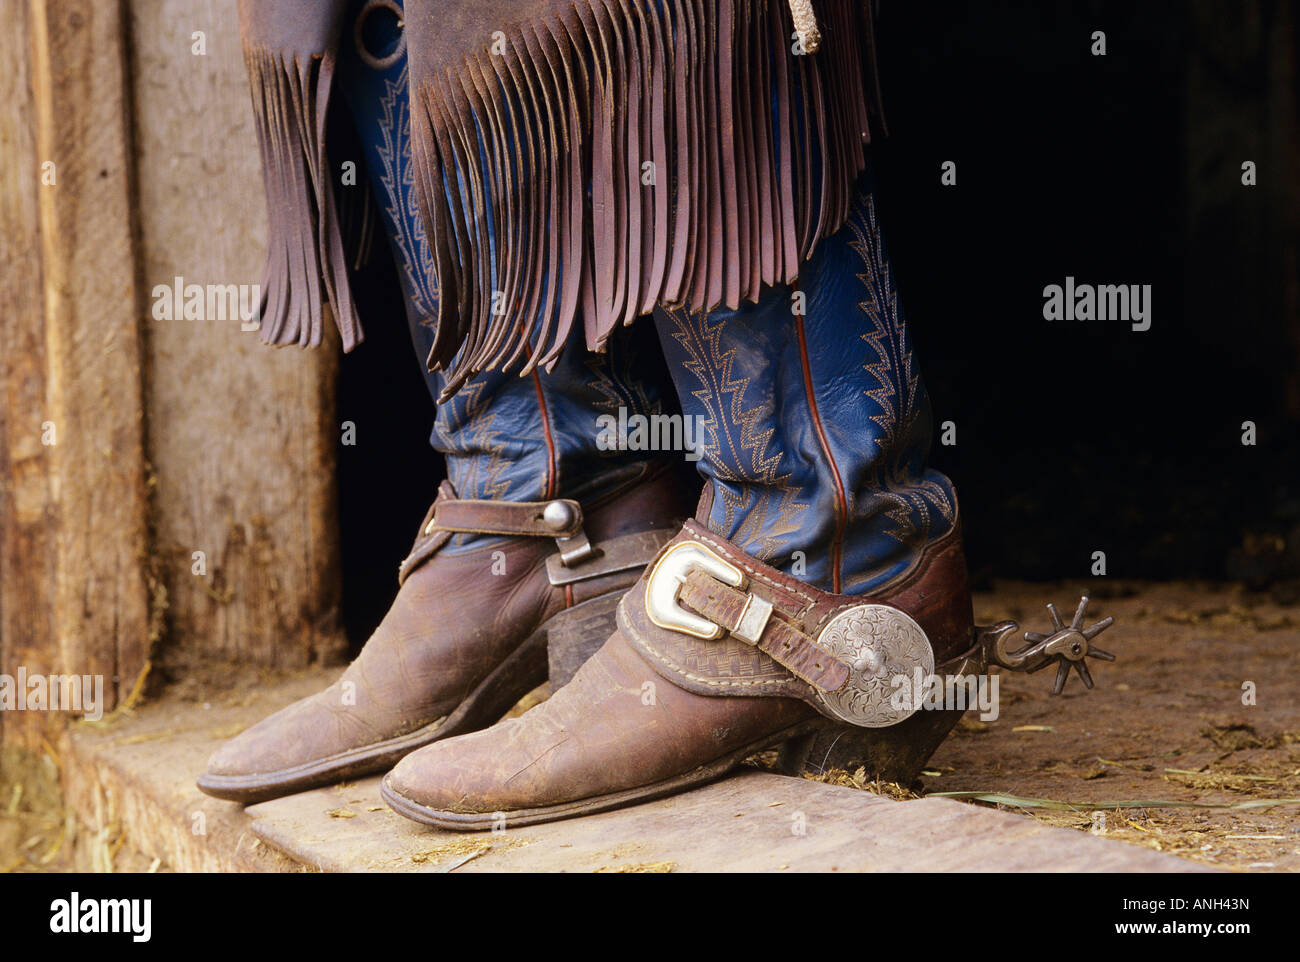 cowboy boots stockfotos cowboy boots bilder alamy. Black Bedroom Furniture Sets. Home Design Ideas